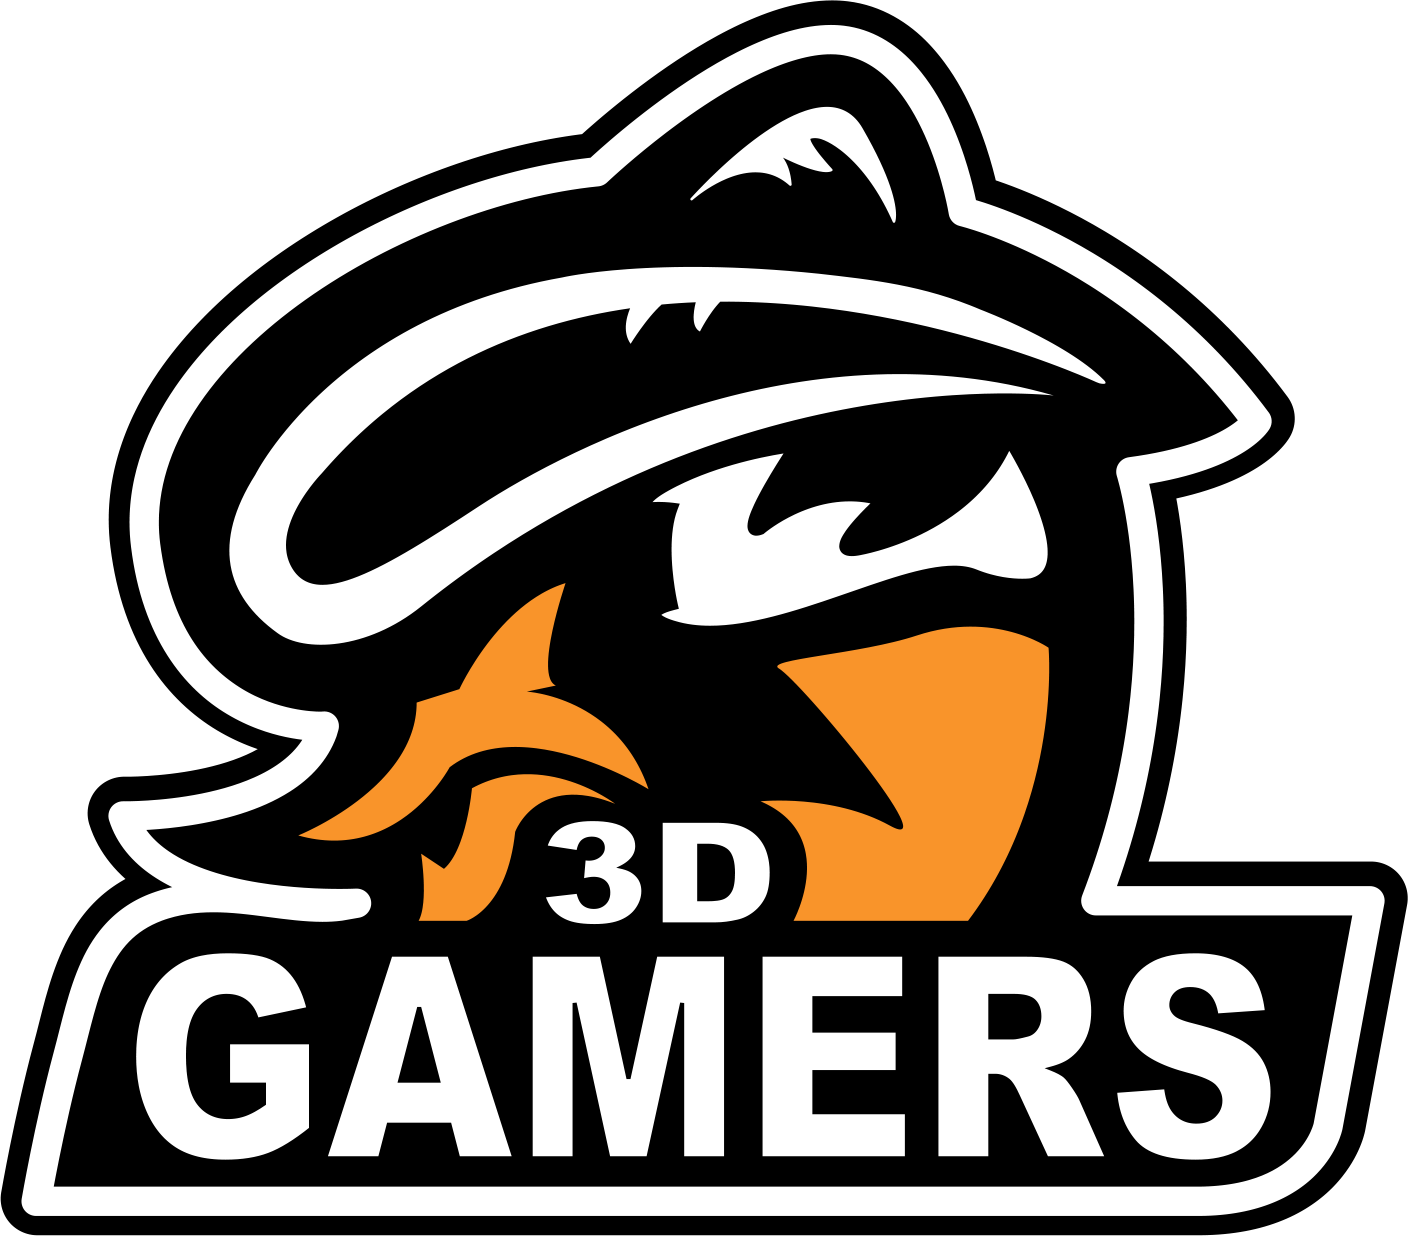 3D.Gamers